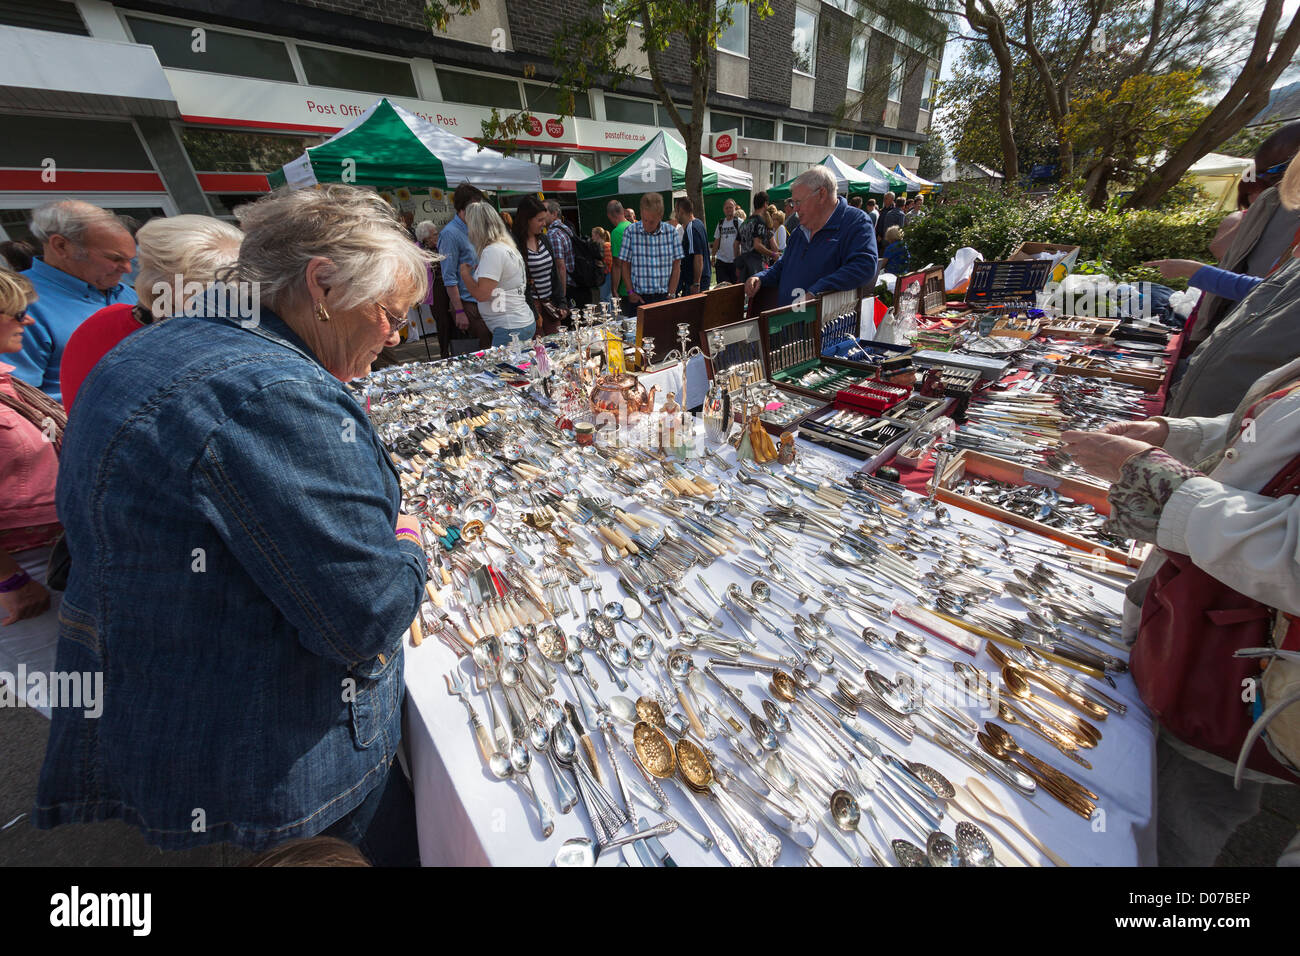 Used silverware and cutlery on sale at market stand, Abergavenny Food Festical, Wales, UK - Stock Image